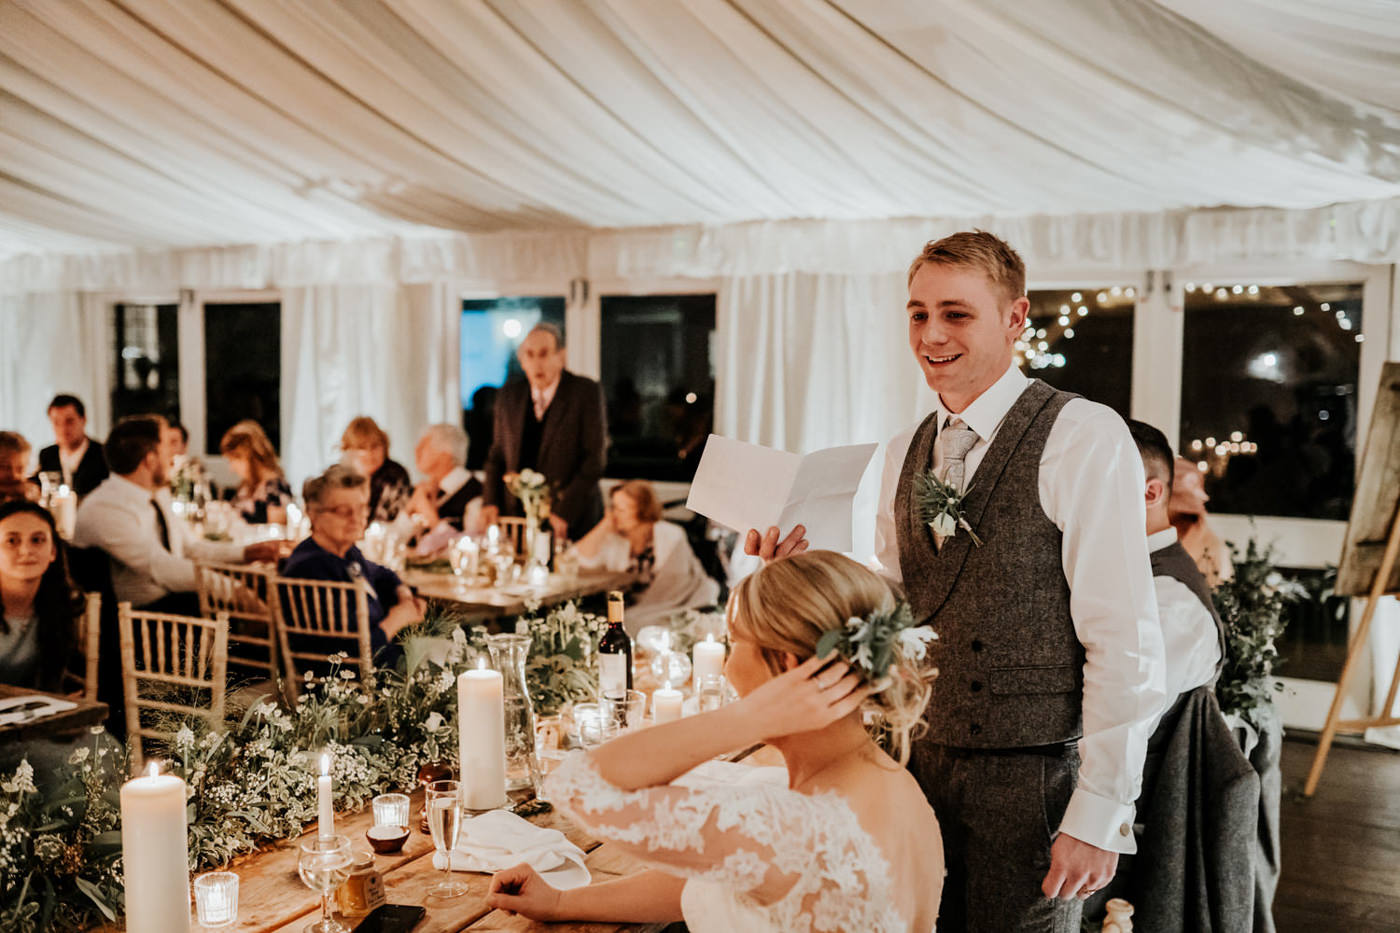 Emily and Rich, Moonraker Hotel, Wiltshire 21